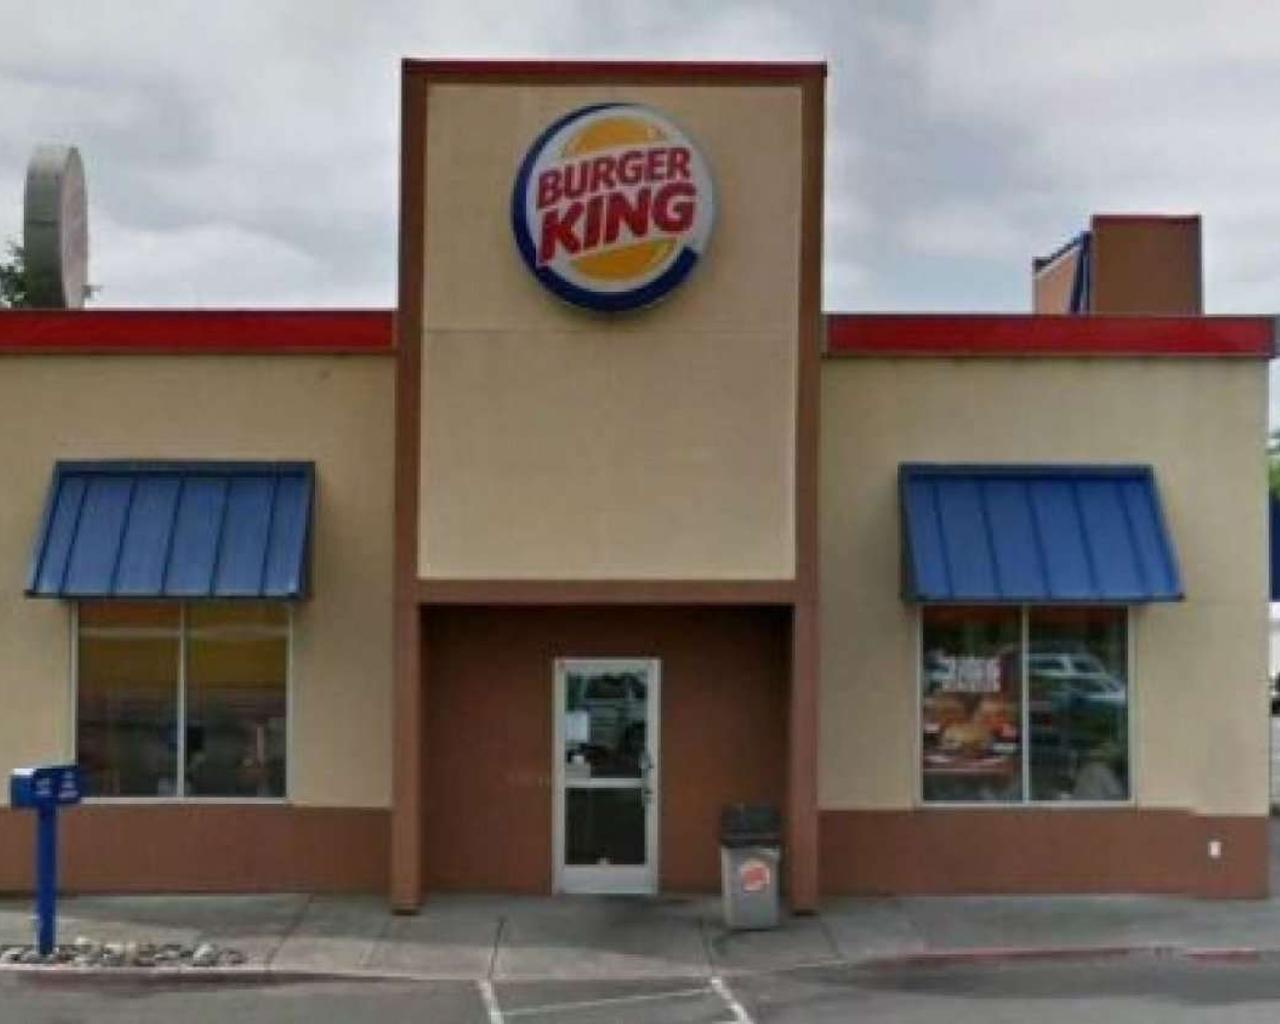 Burger King Offers Man Free Meals After Ordeal In Their Restaurant—Then They Take The Offer Back